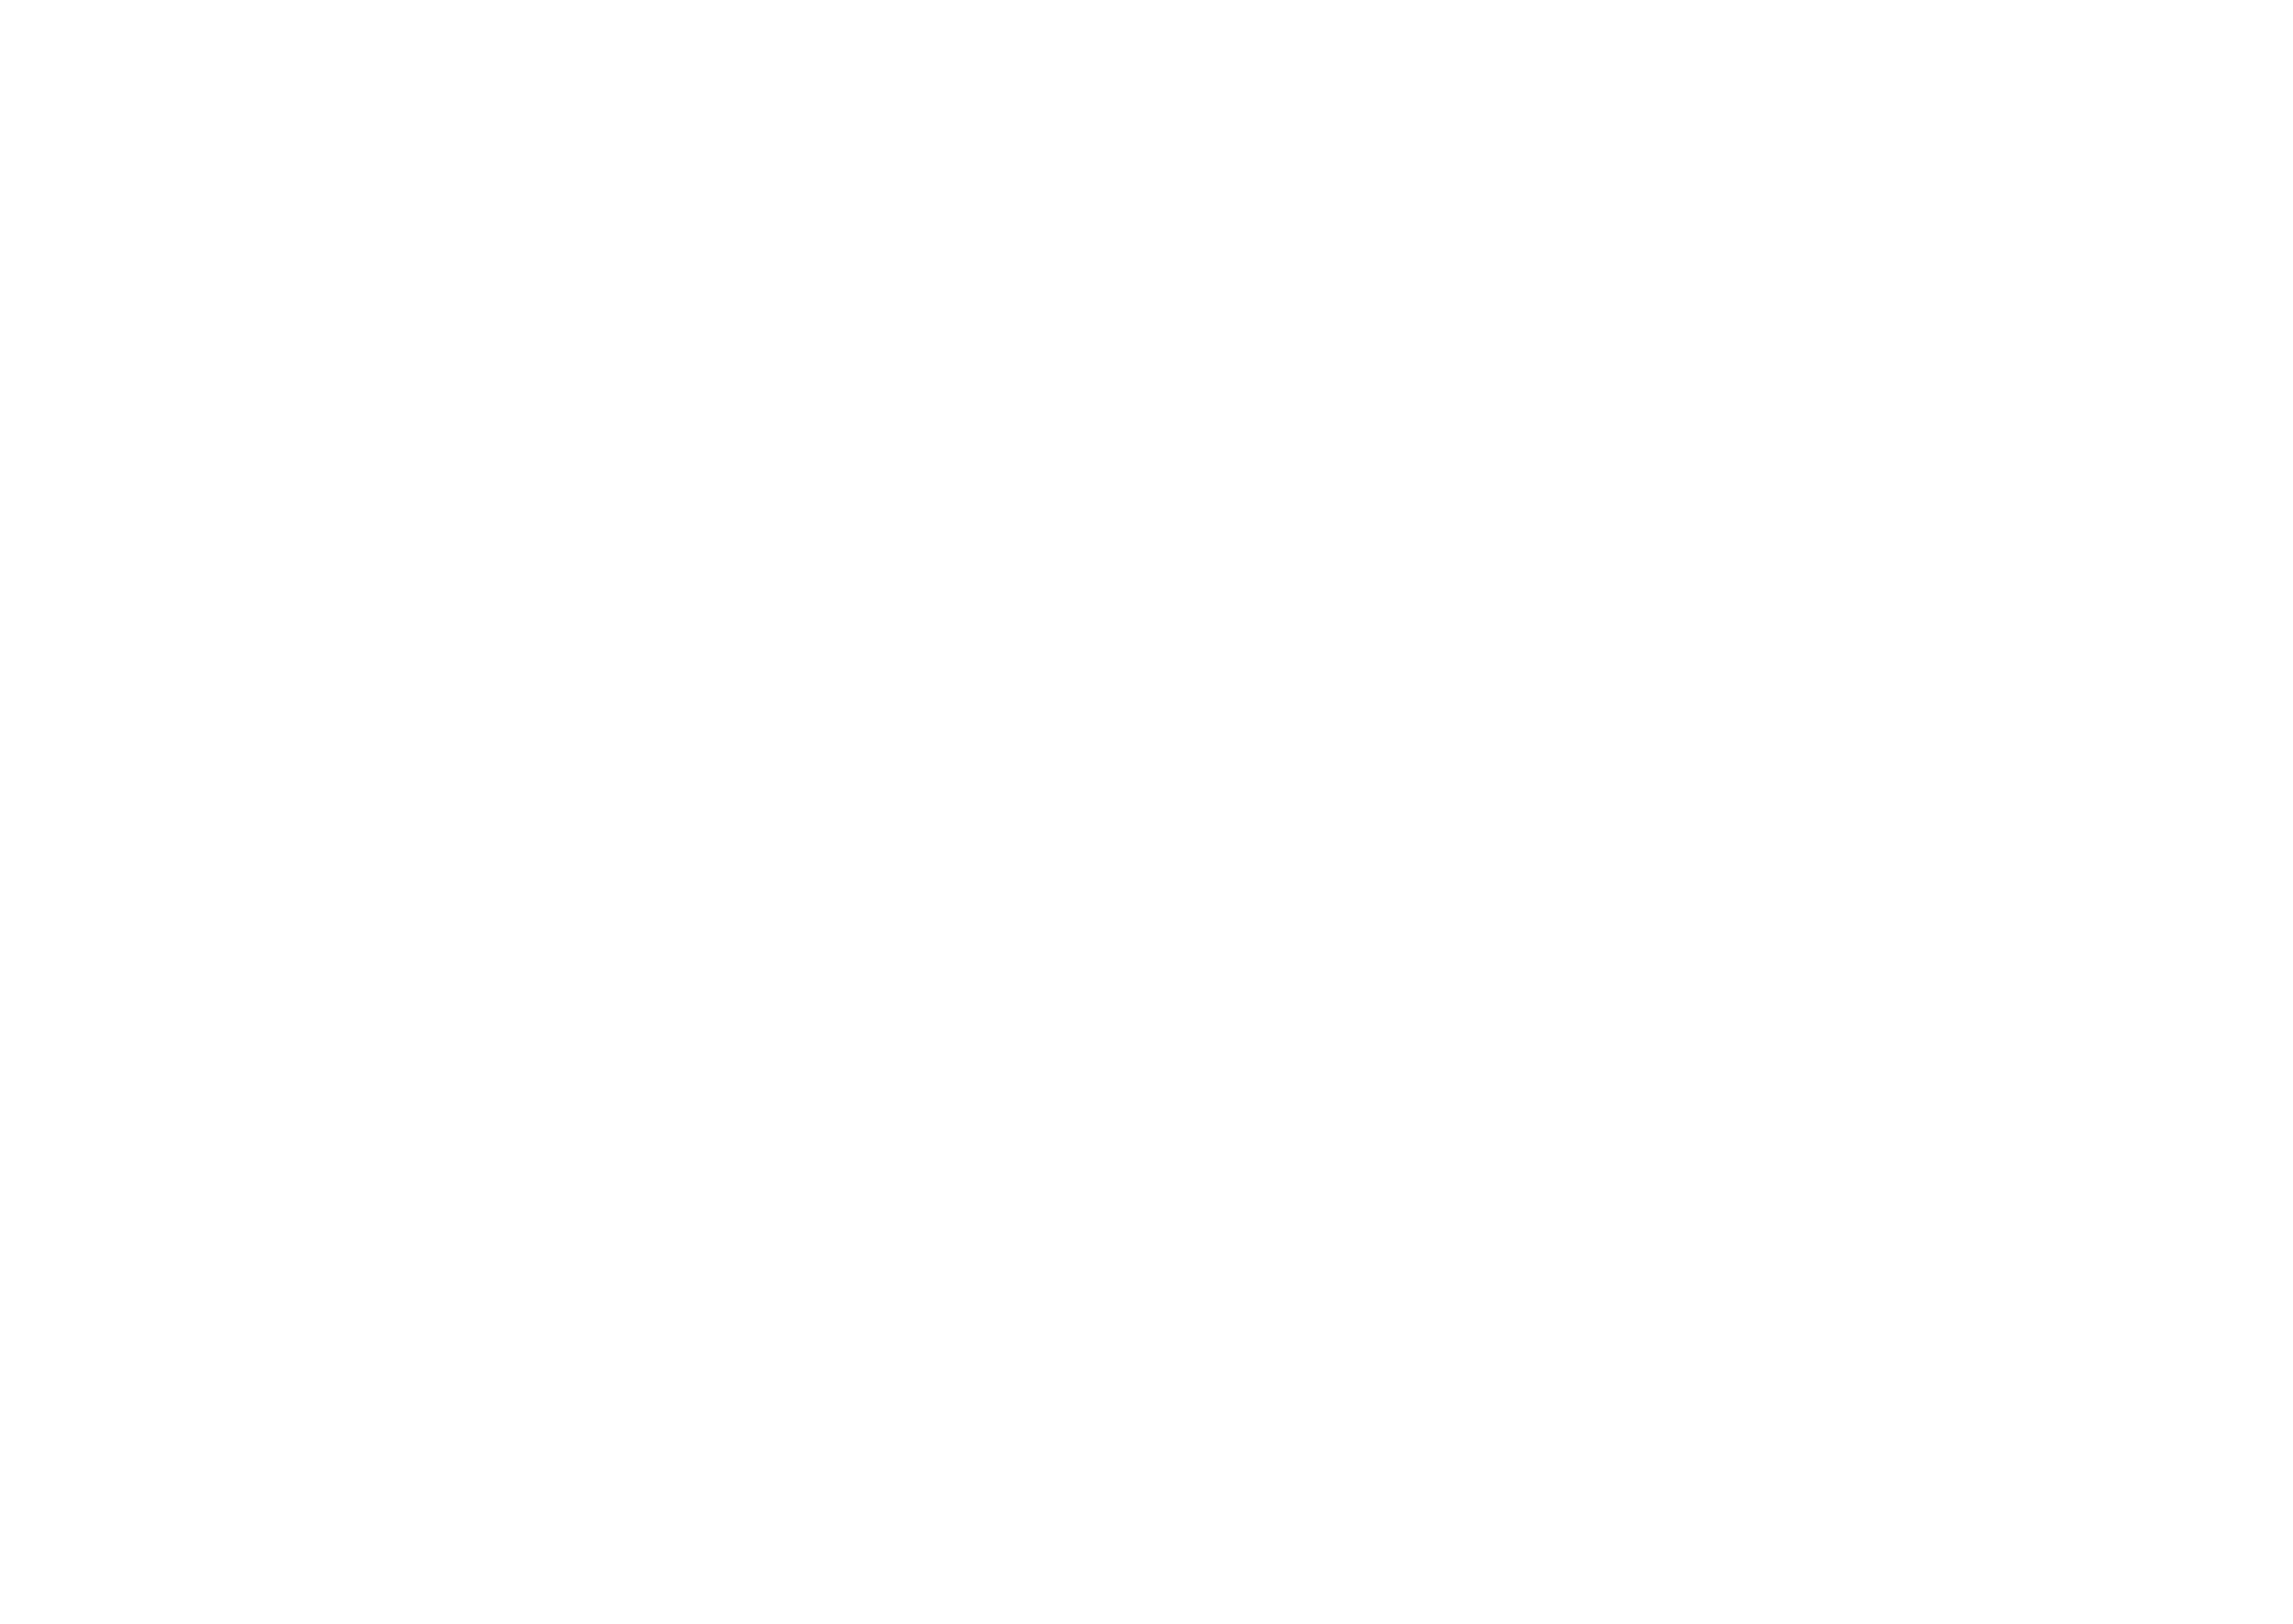 Map with shaded in states showing operation locations